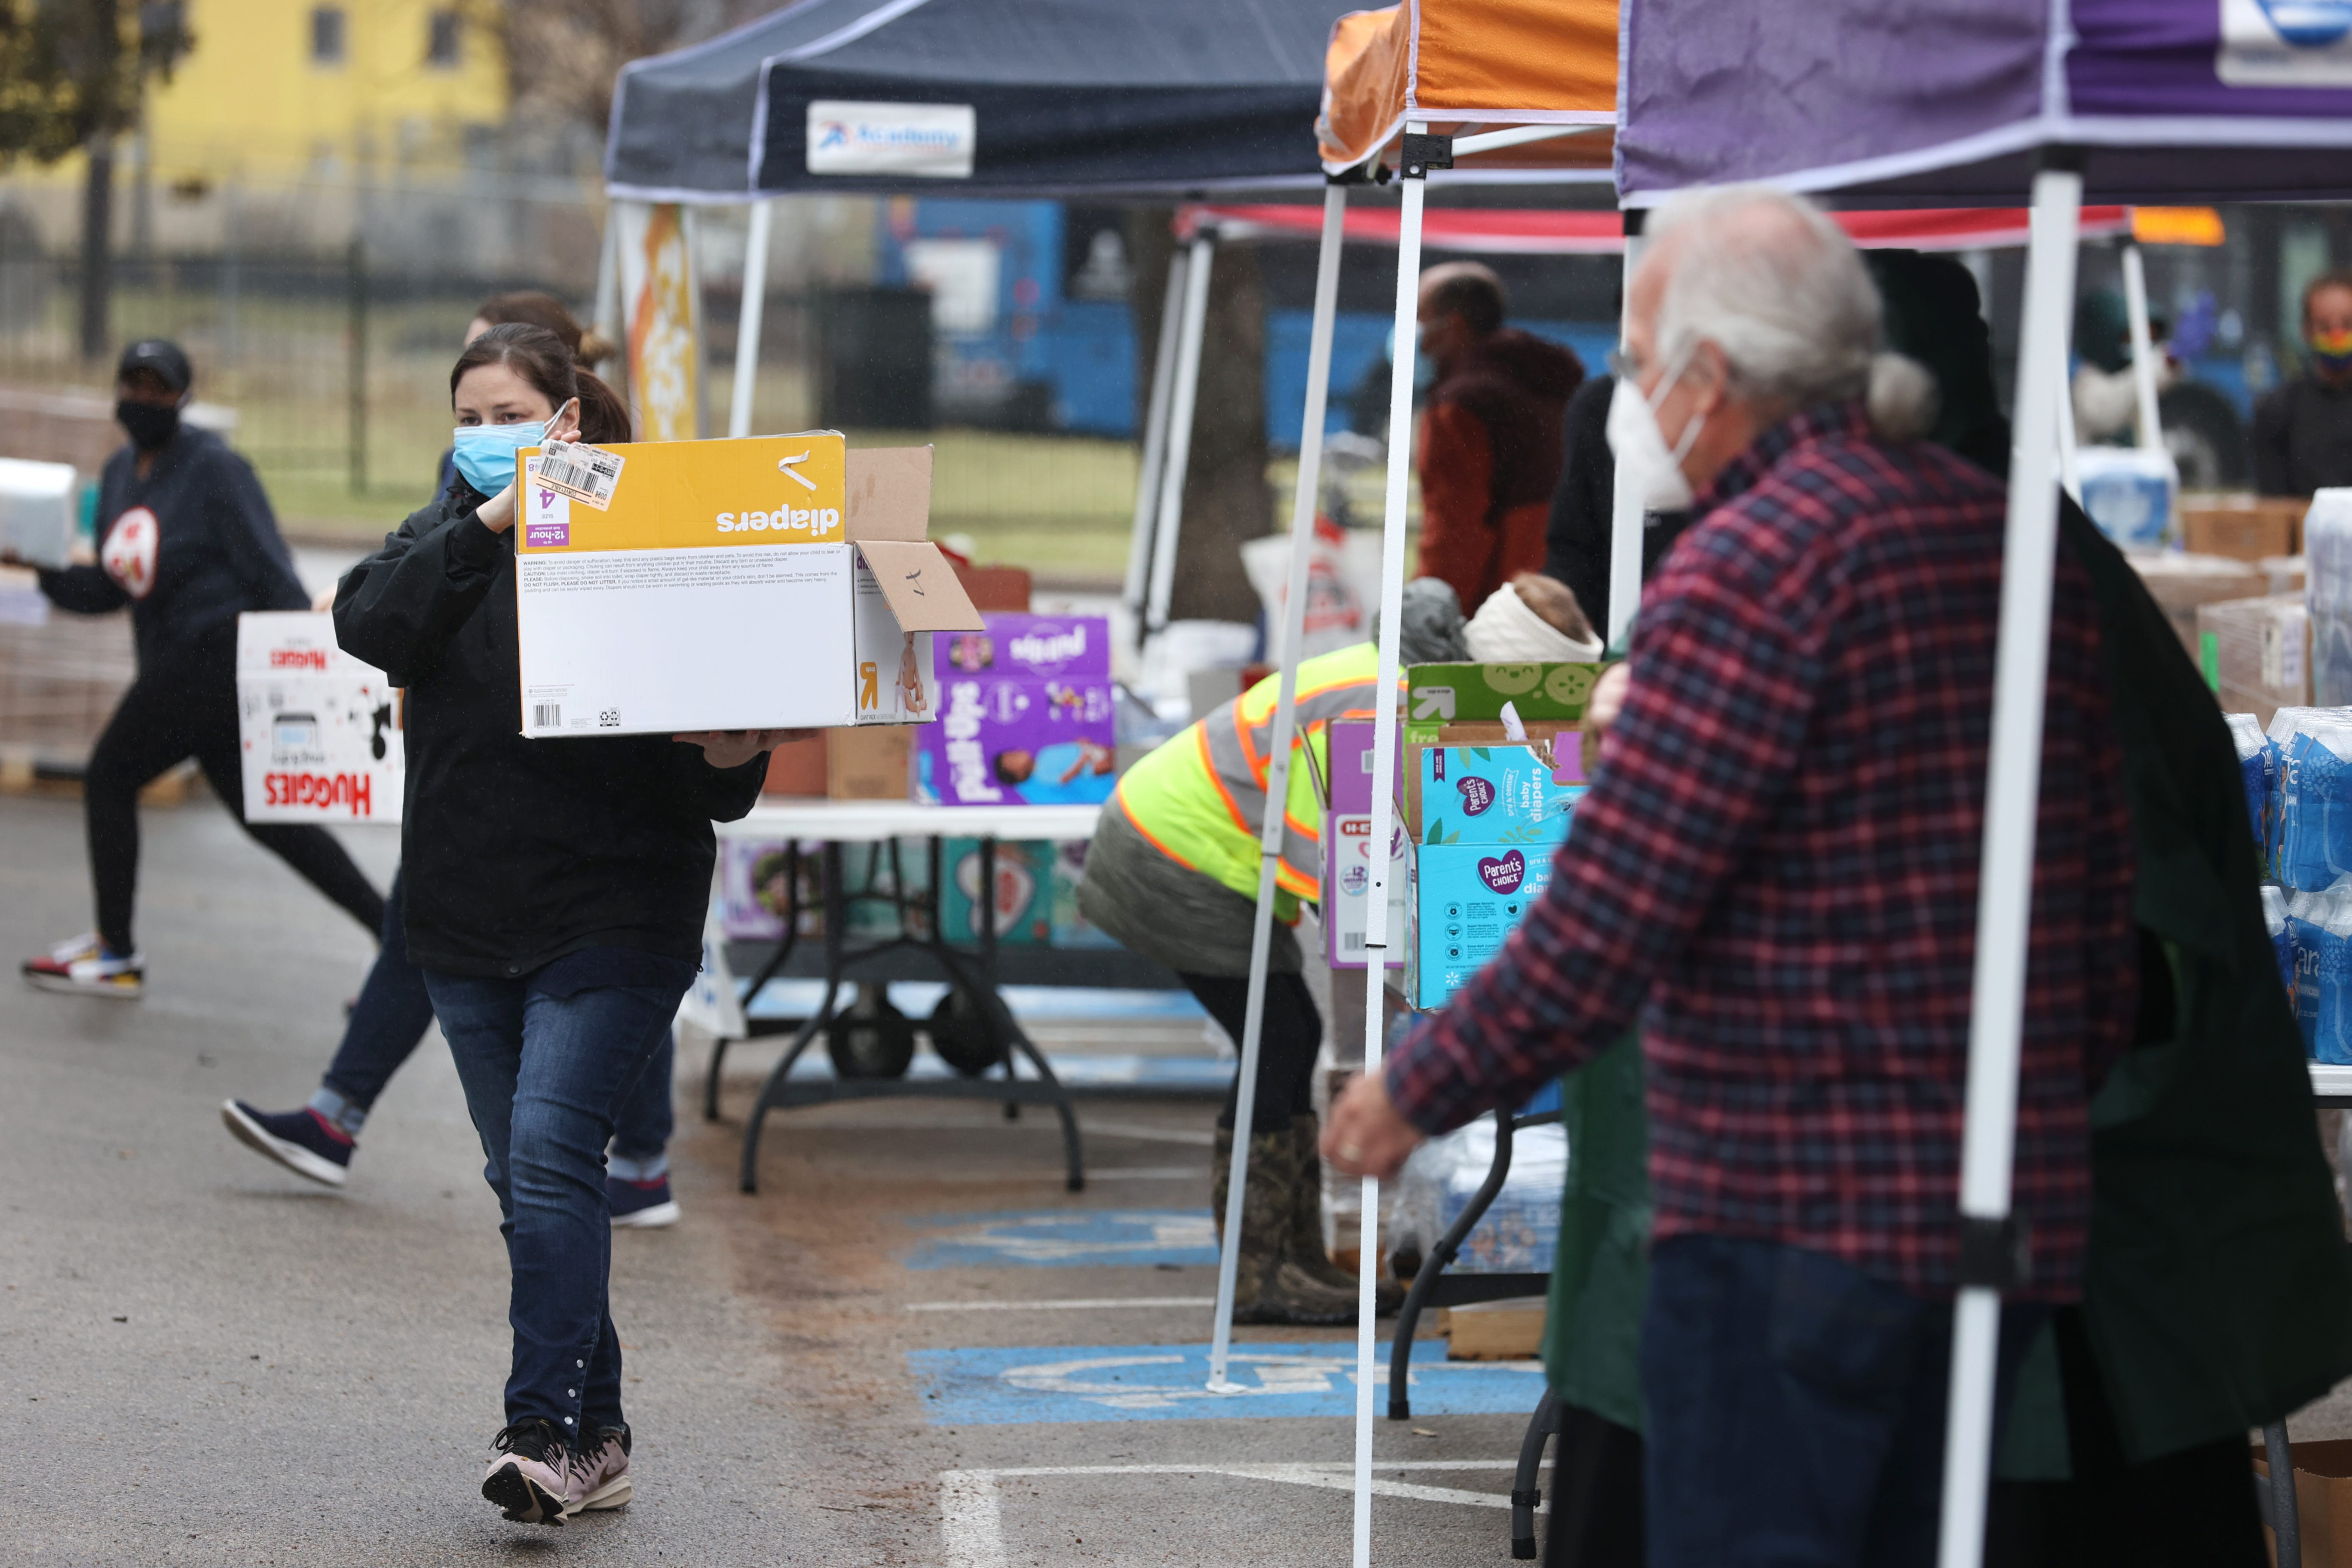 Workers help to dispense food, water and hygiene products to people in need at the Millennium Entertainment Center food distribution site in East Austin on Thursday, Feb. 25, 2021.